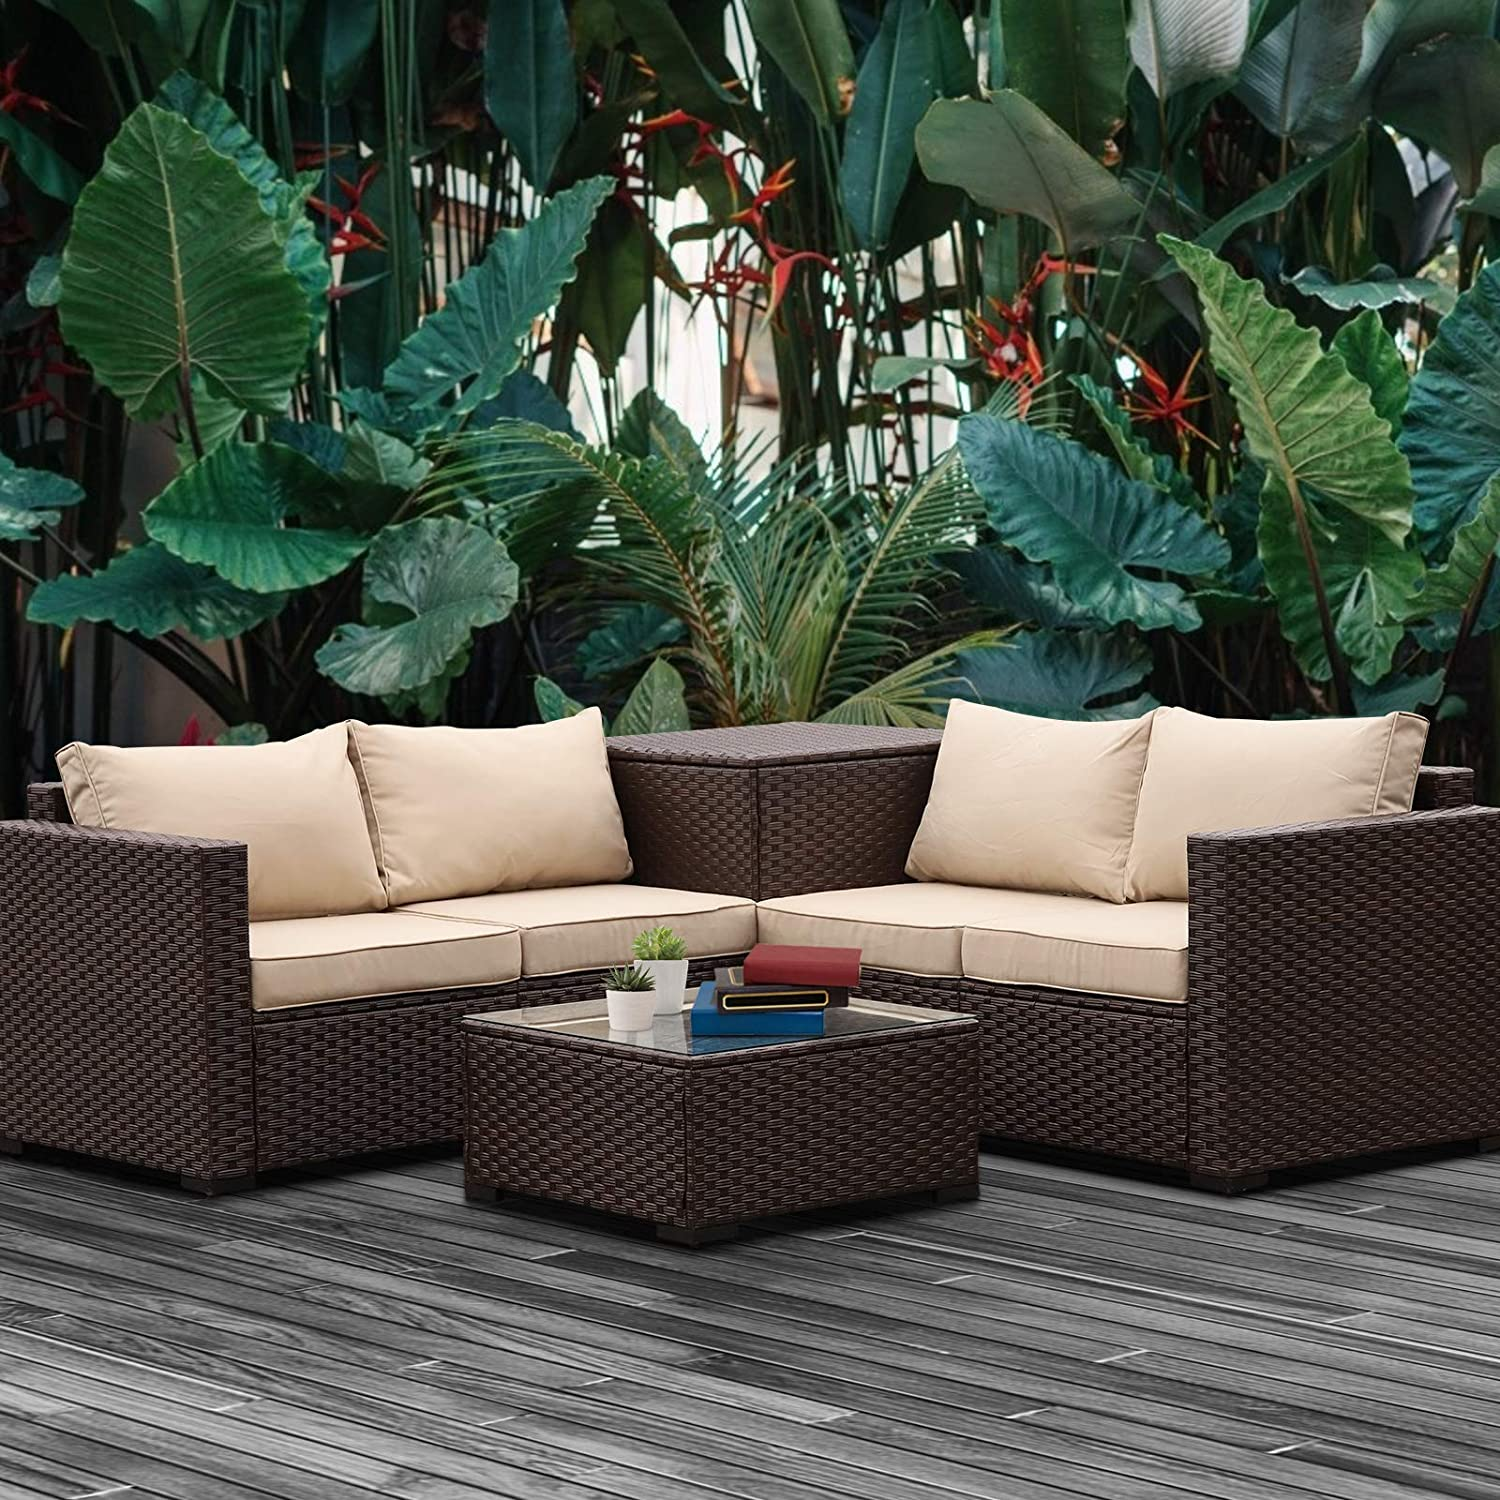 Patio PE Wicker Furniture Set 4 Pieces Outdoor Brown Rattan Sectional Conversation Sofa Chair with Storage Box Table and Khaki Cushions